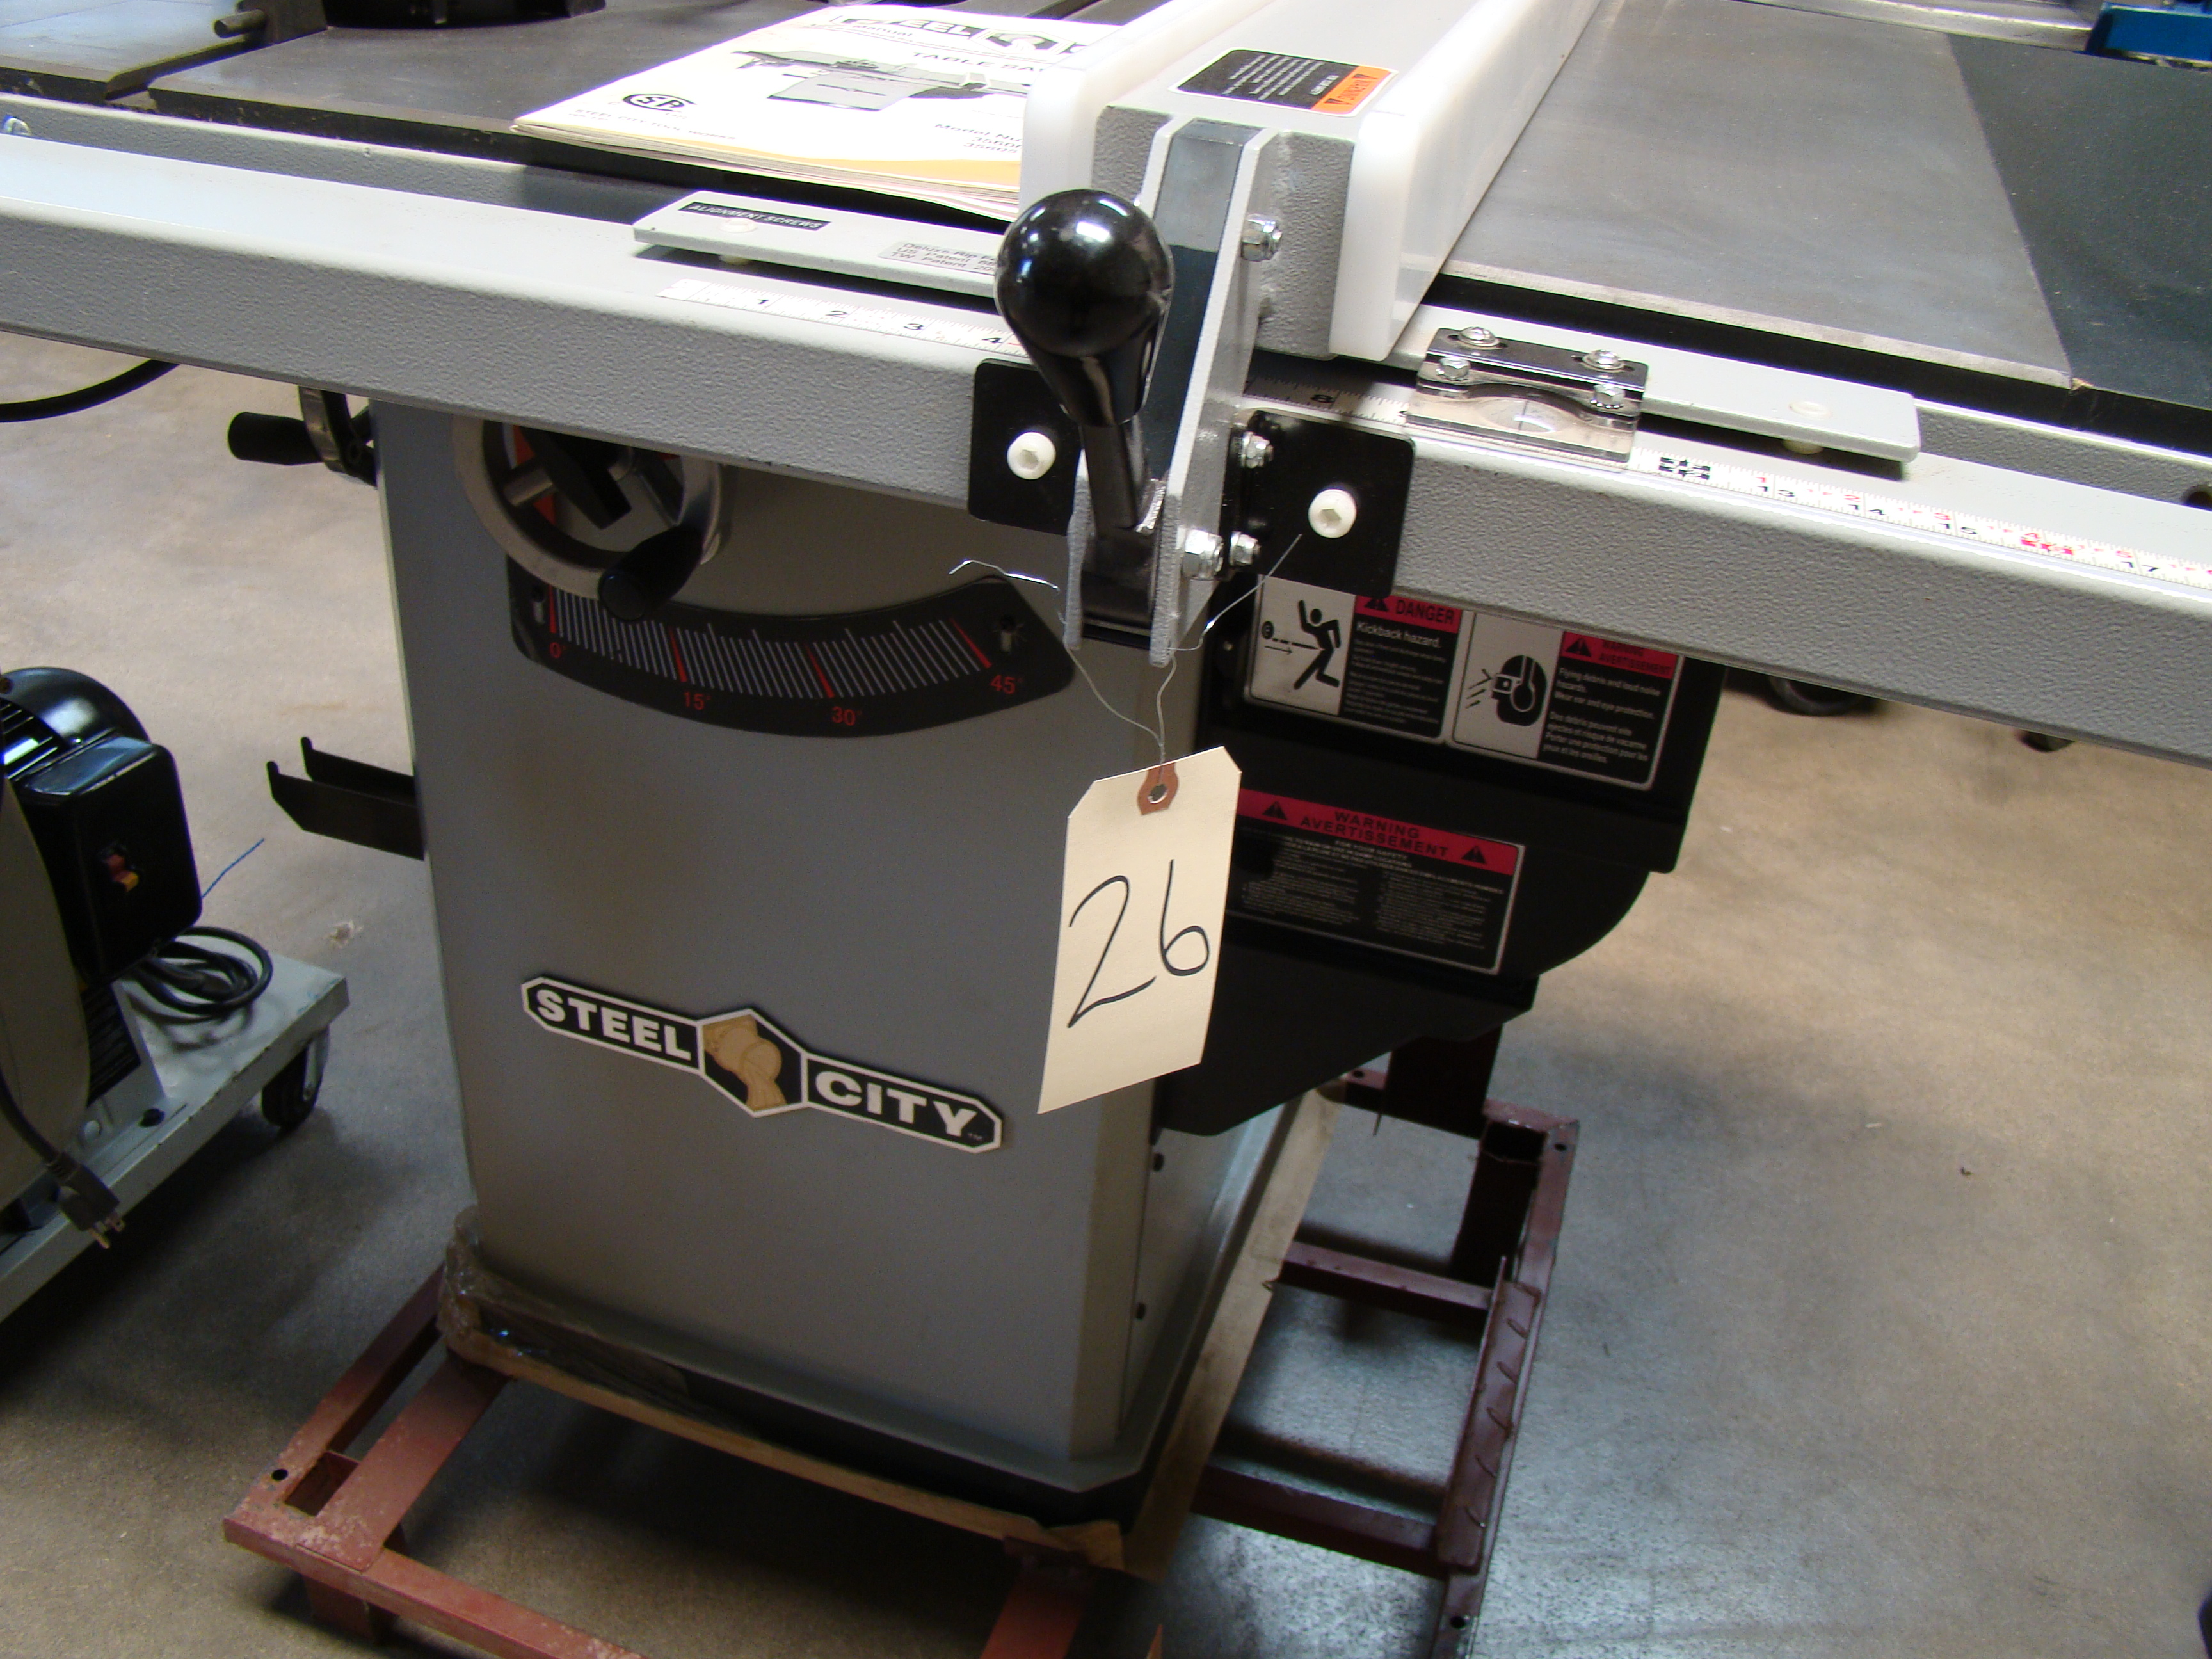 """Steel City Table/Cabinet Saw Model 35600, 34"""" Rails 1-3/4 HP 120/240 Volt 1PH - Image 7 of 7"""